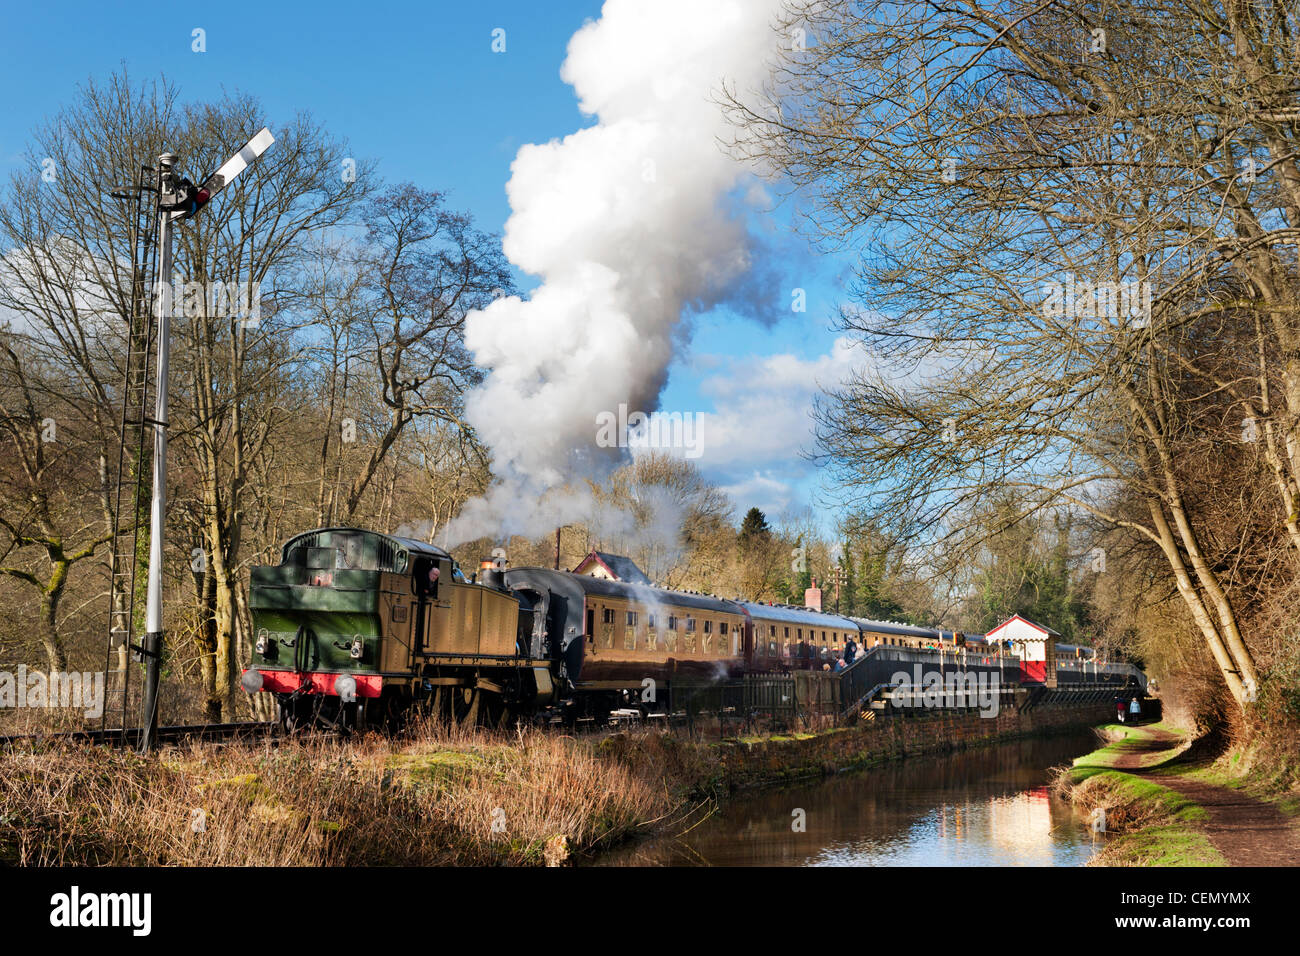 Ex-GWR Large Prairie Tank loco number 5199 takes a train out of Consall on The Churnet Valley Railway, Staffordshire - Stock Image